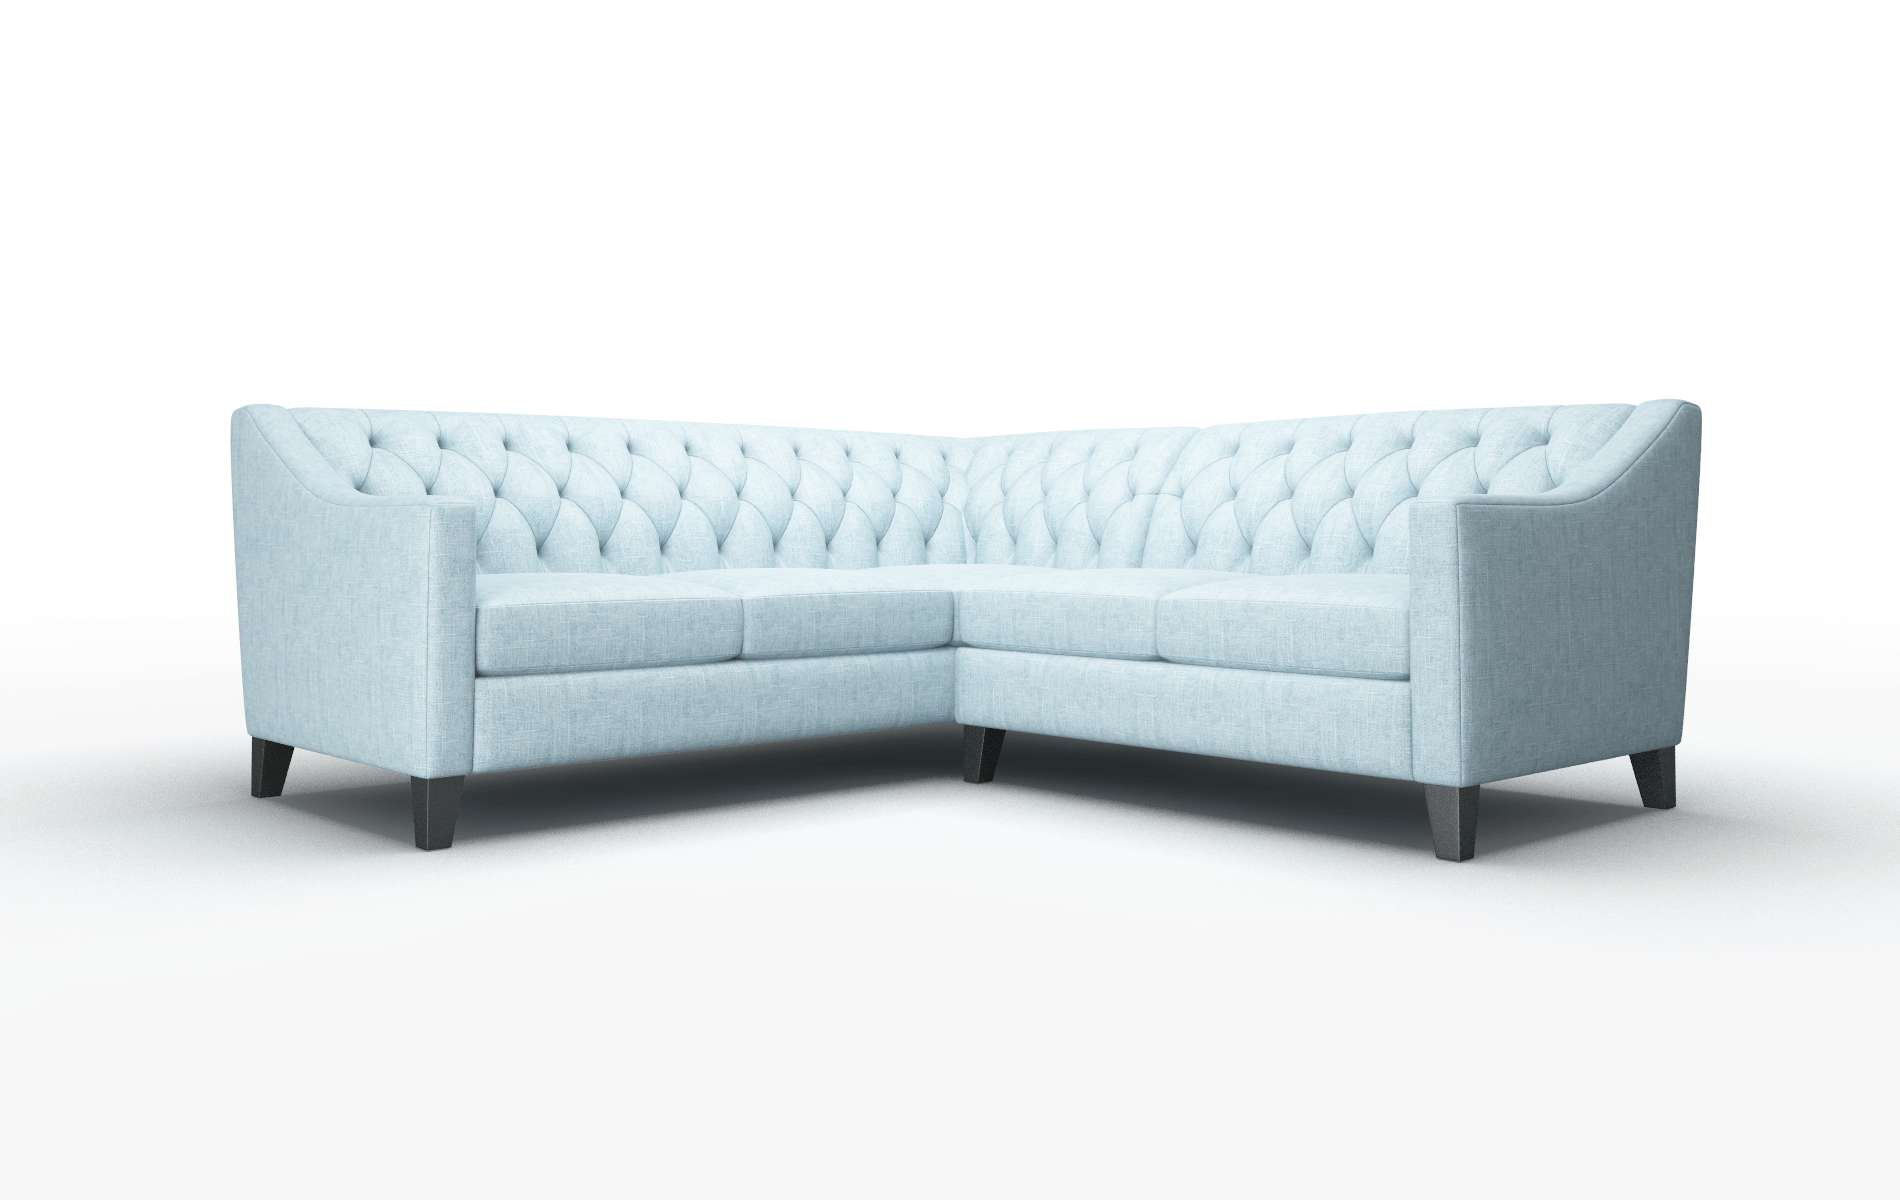 Seville Atlas Turquoise Sectional espresso legs 1